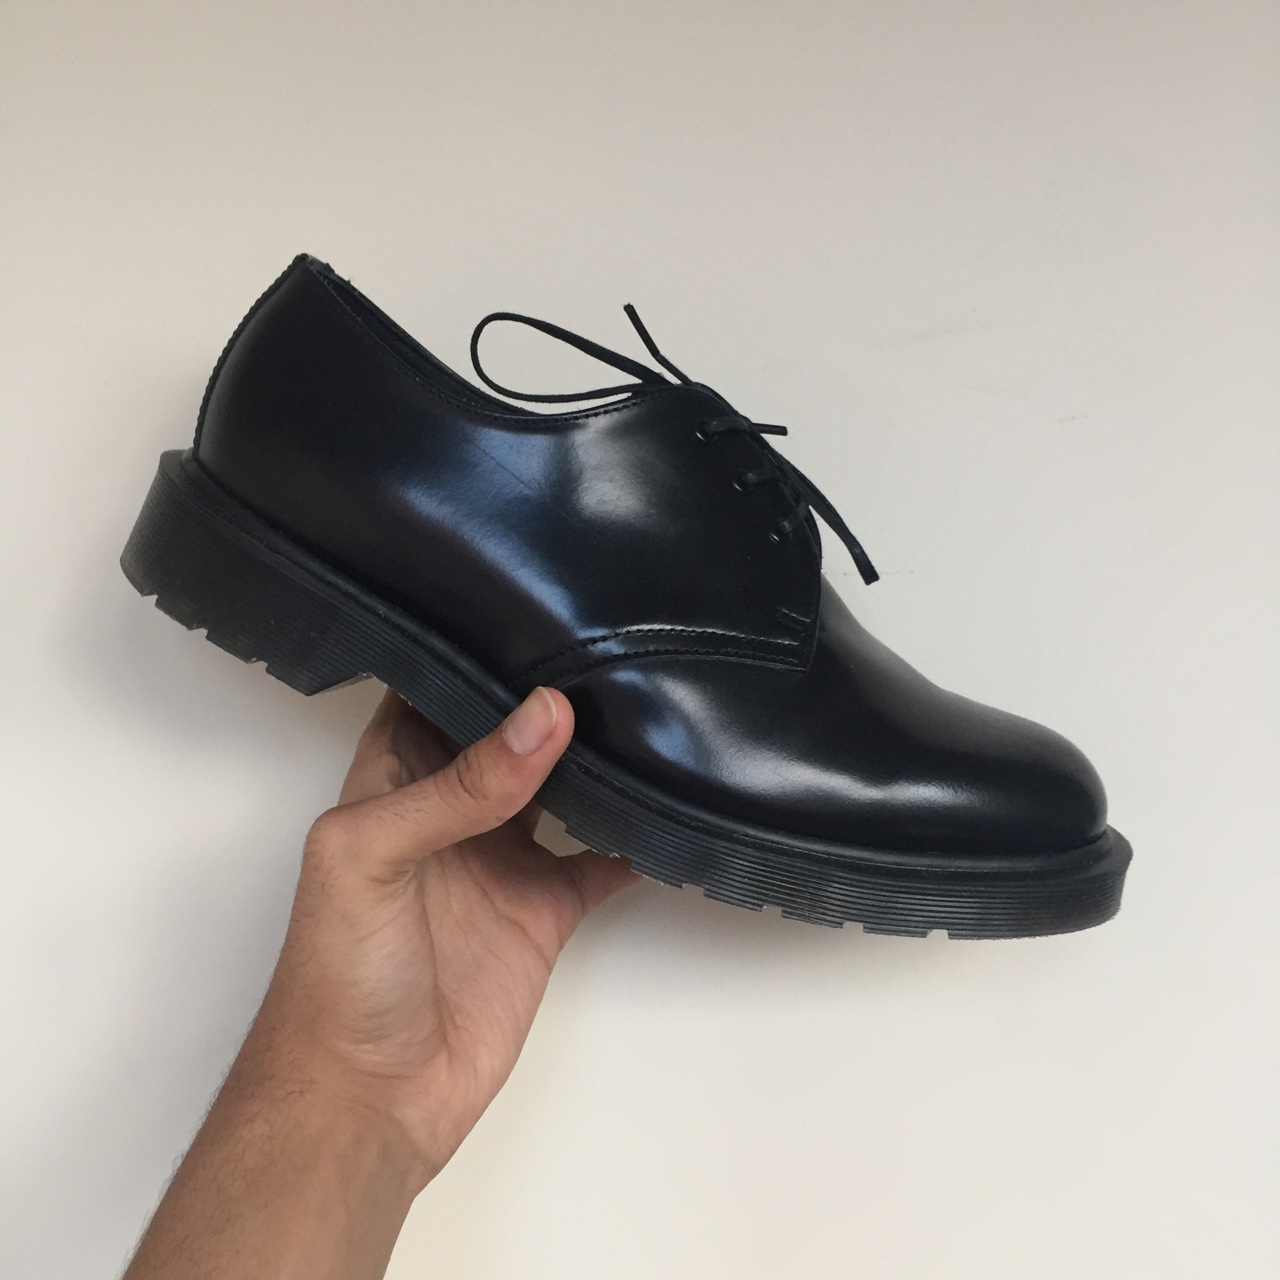 boanil brush dr martens, OFF 70%,Free